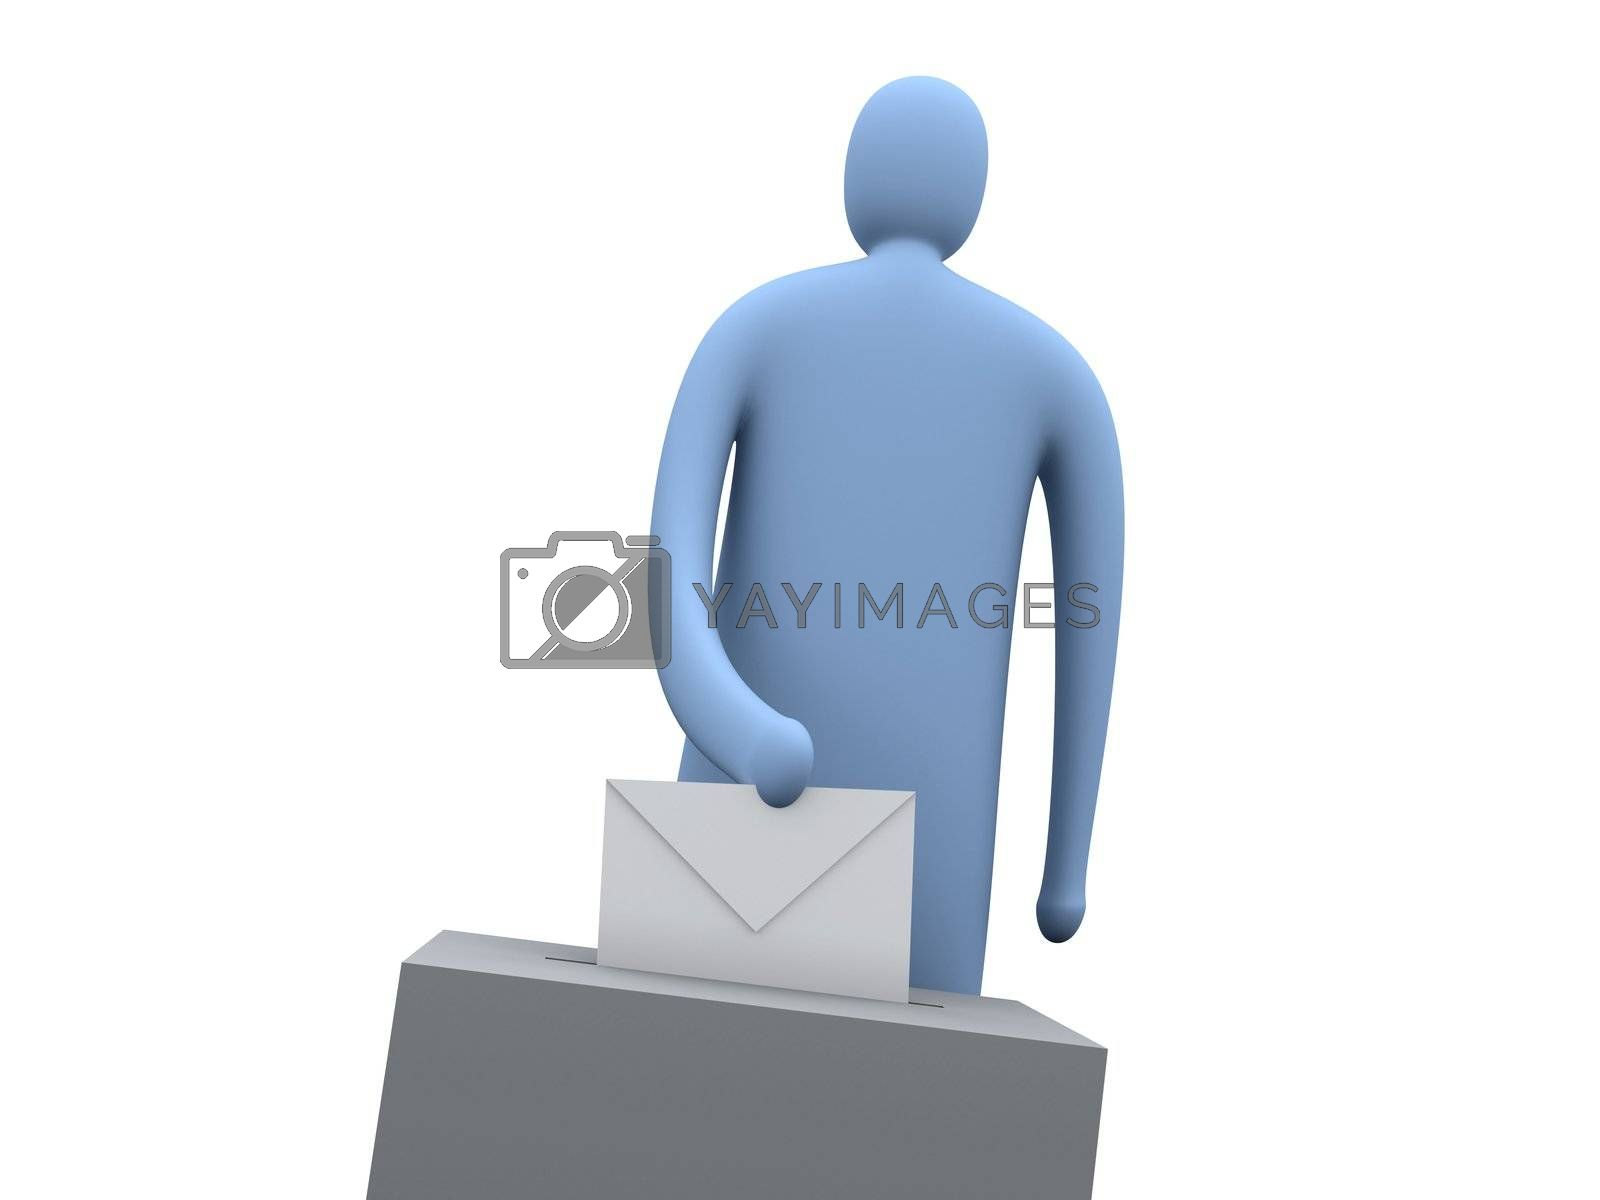 Computer generated image - Voting.